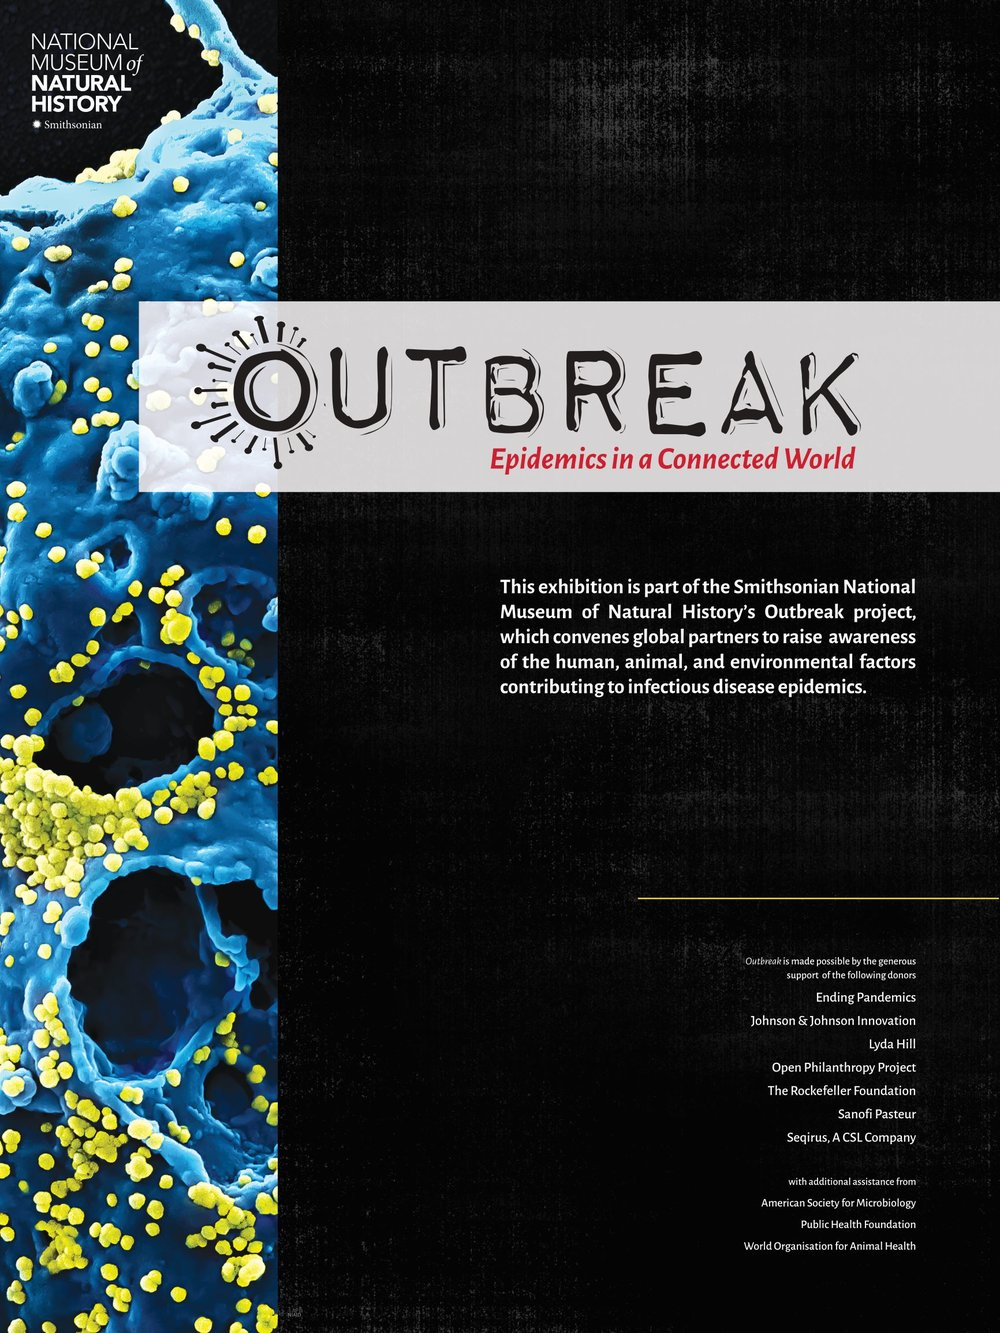 Outbreak, Epidemics in a Connected World 2 - resize.jpg